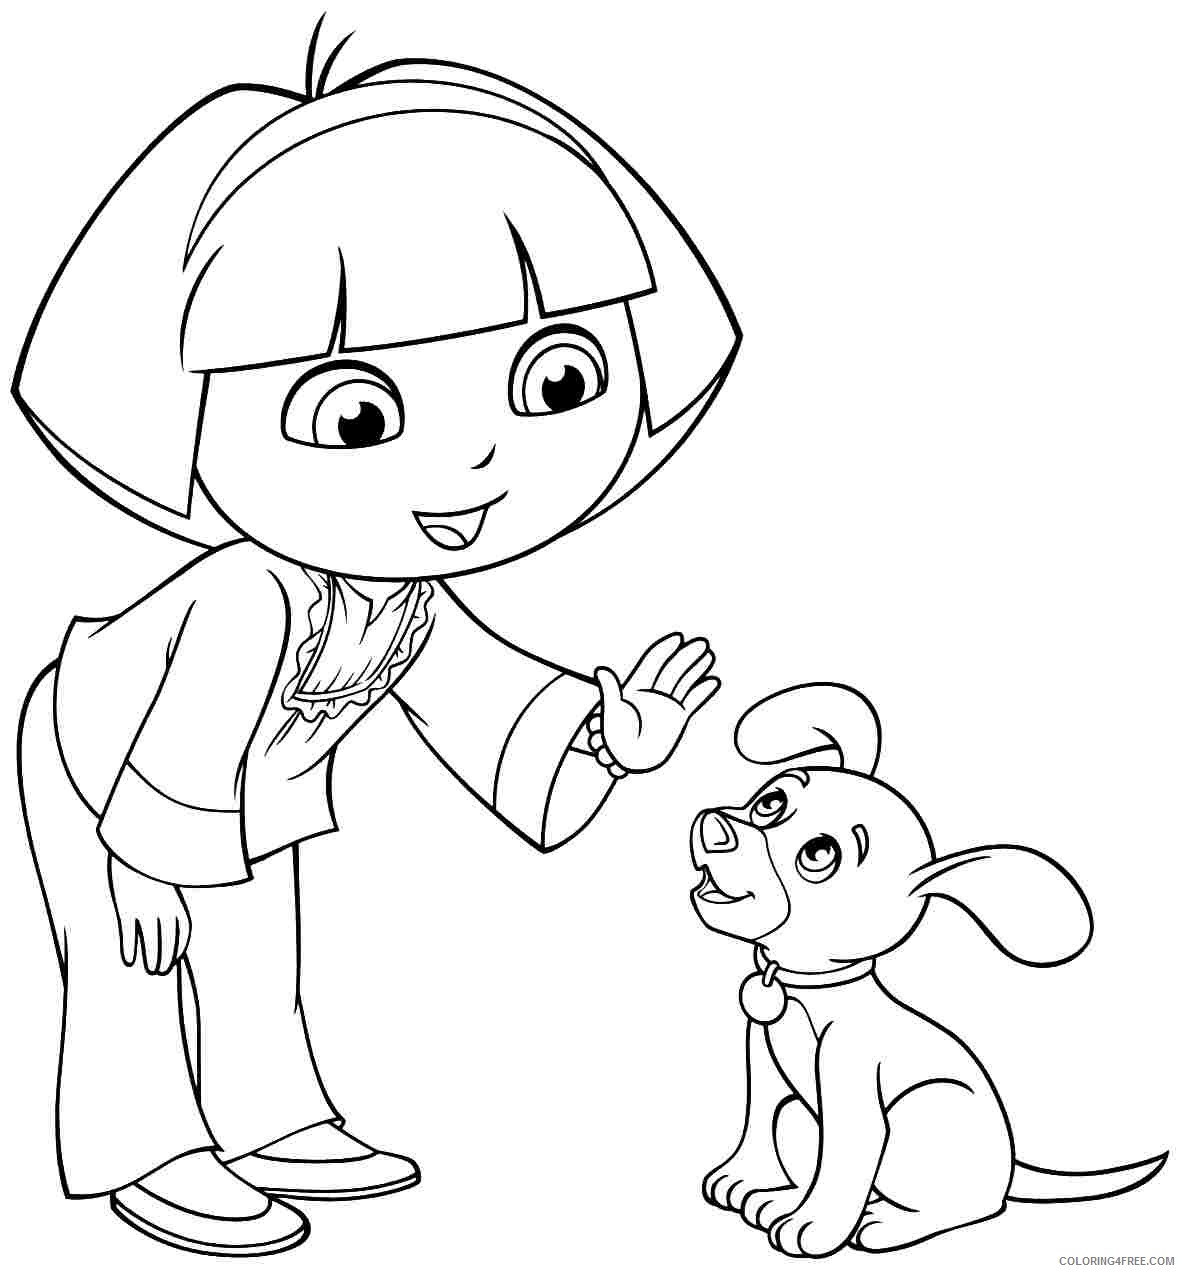 dora coloring pages dora puppy Coloring4free